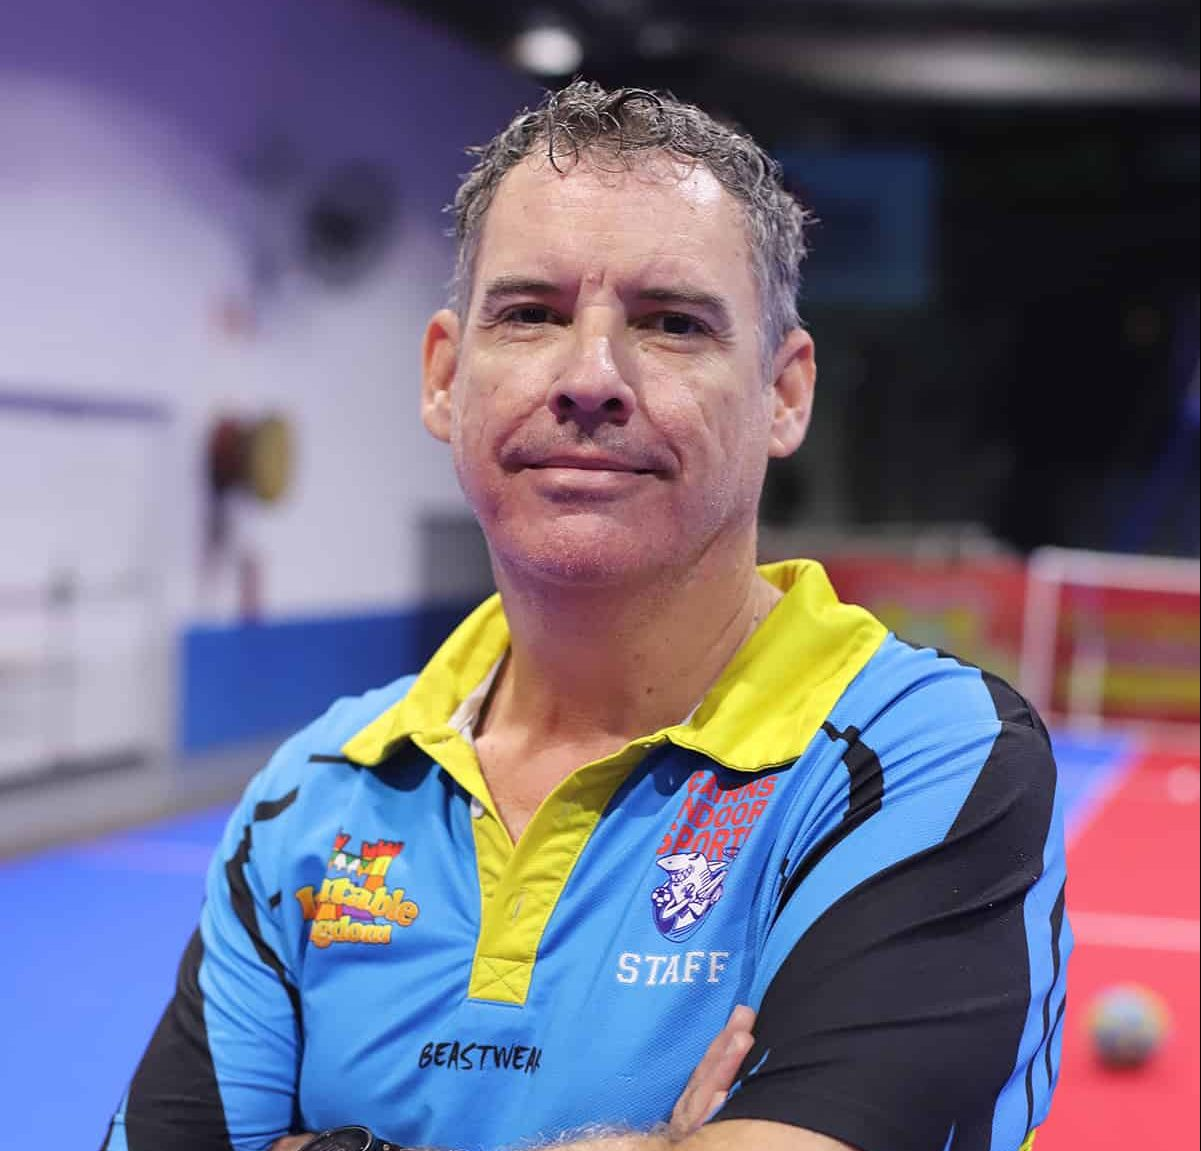 Cairns Indoor Sports - Tim Owner and Director